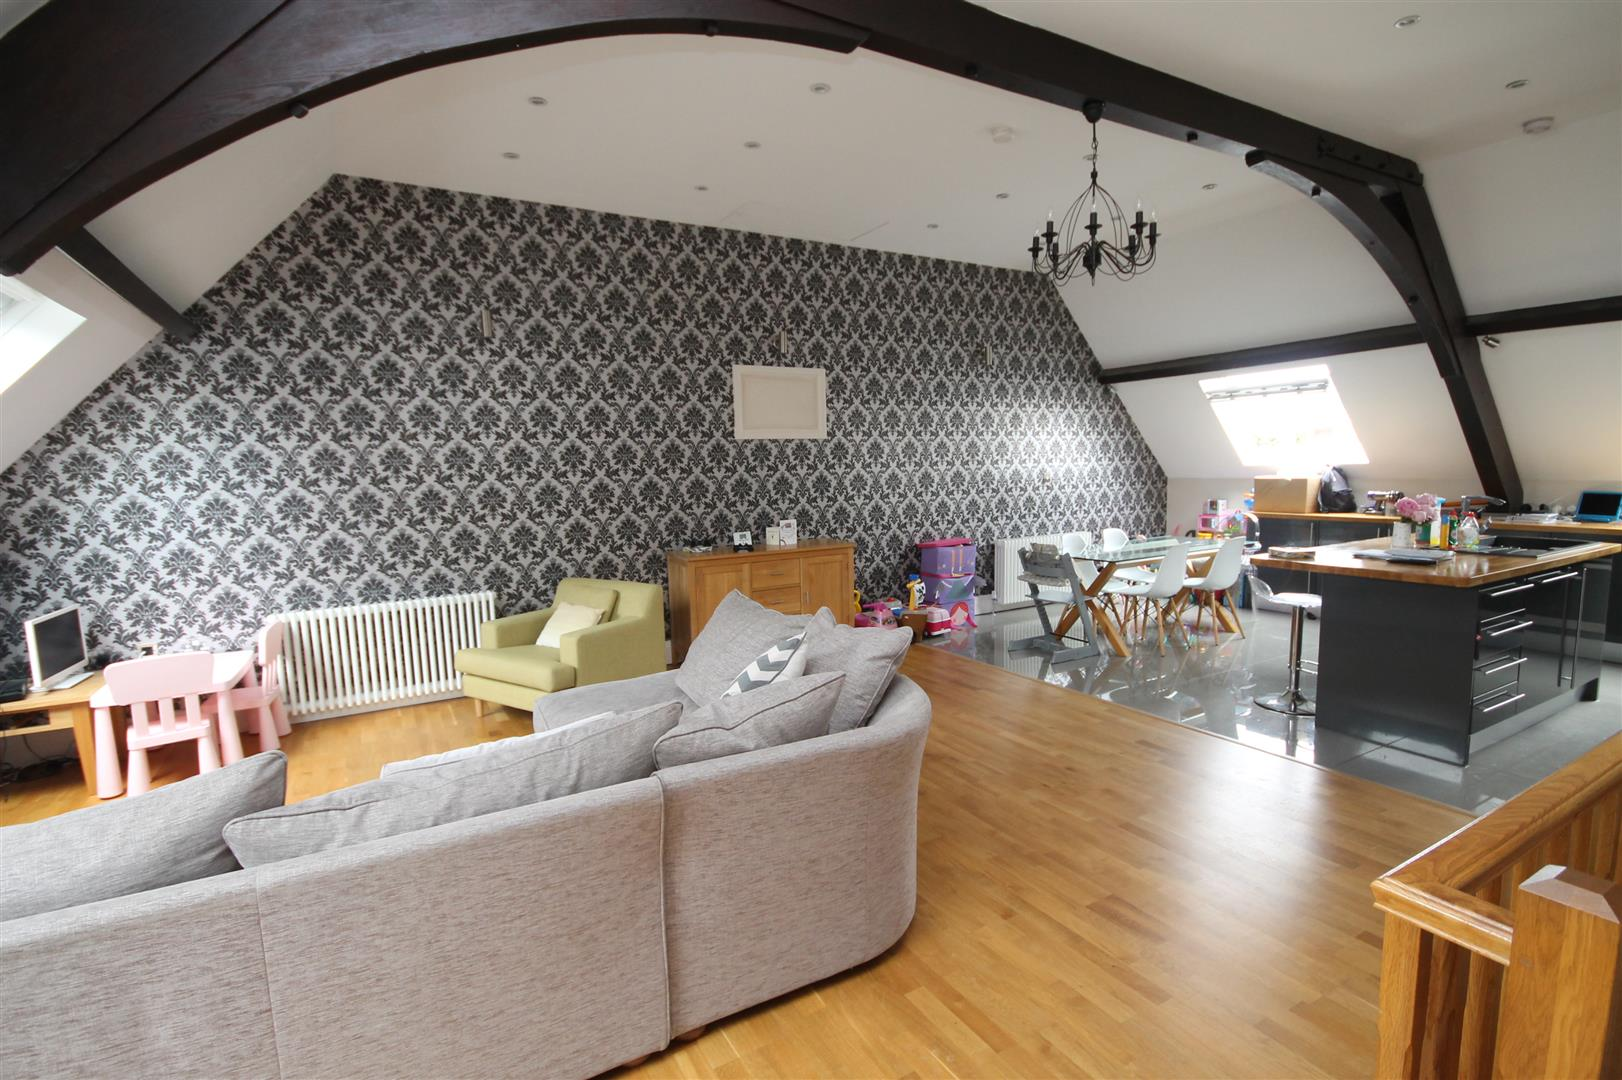 5 bed house to rent in St Catherine's Court, Salisbury Road, Bristol, BS6